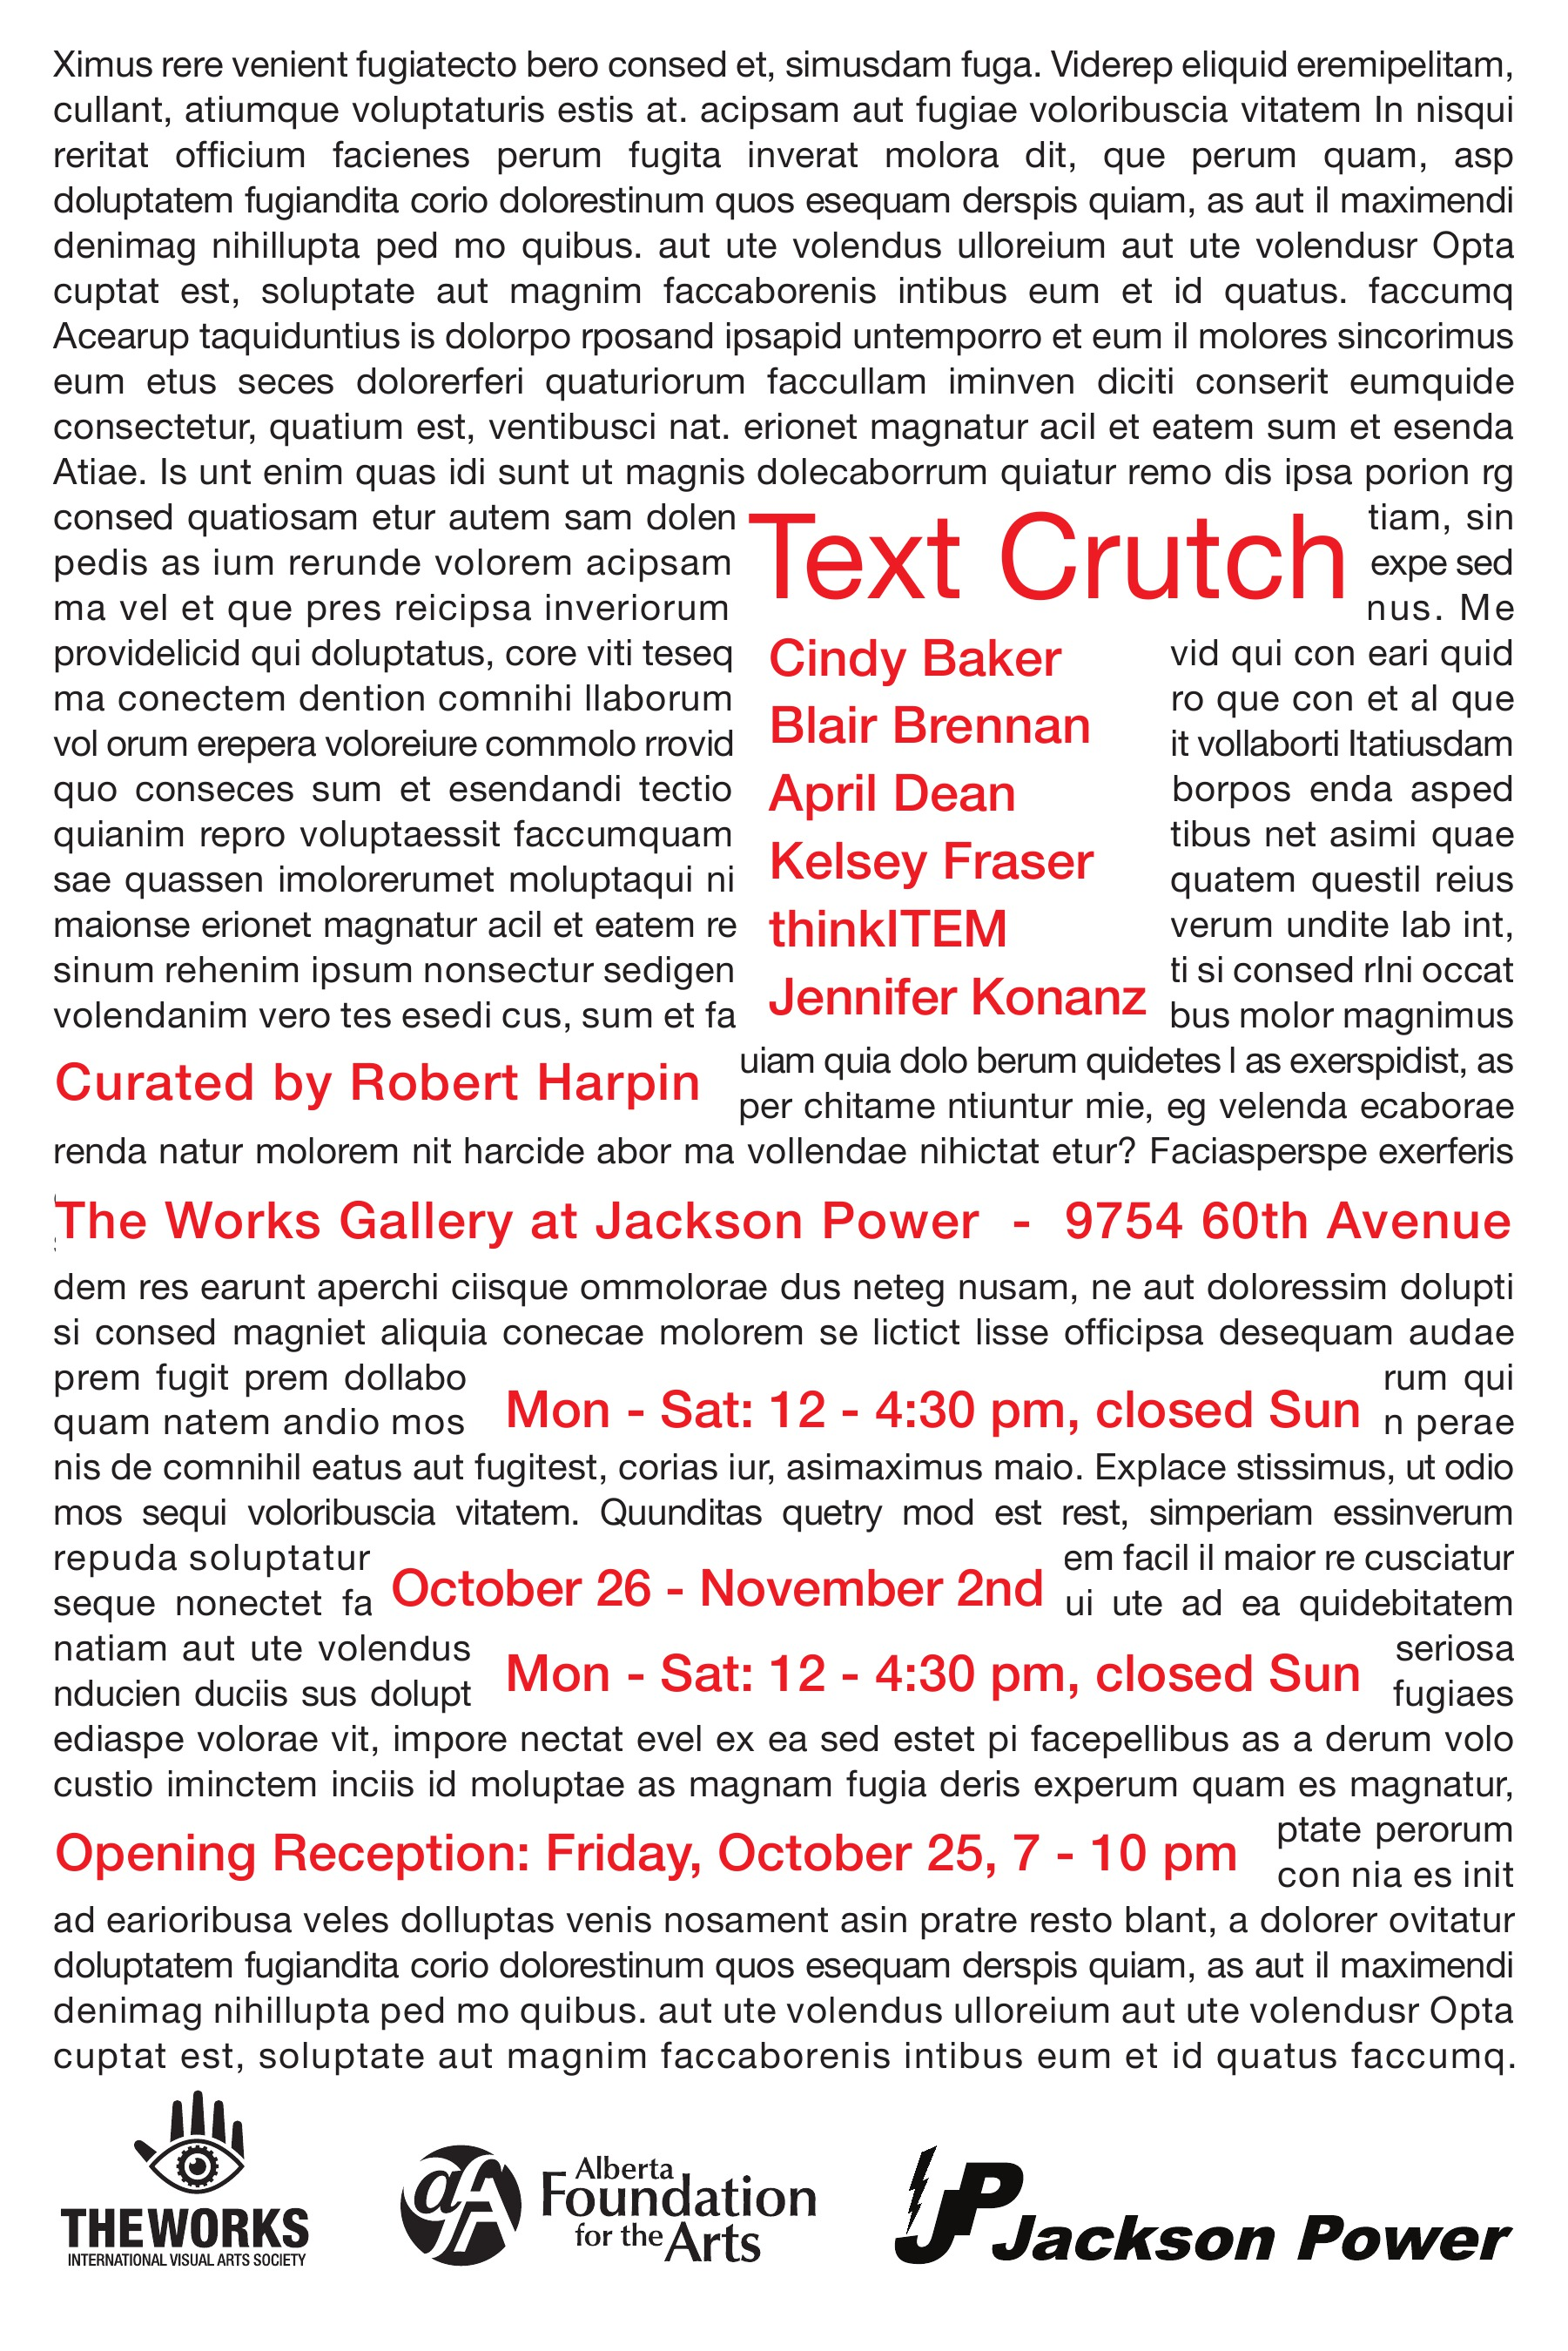 Text Crutch, Curated by Robert Harpin (2013)